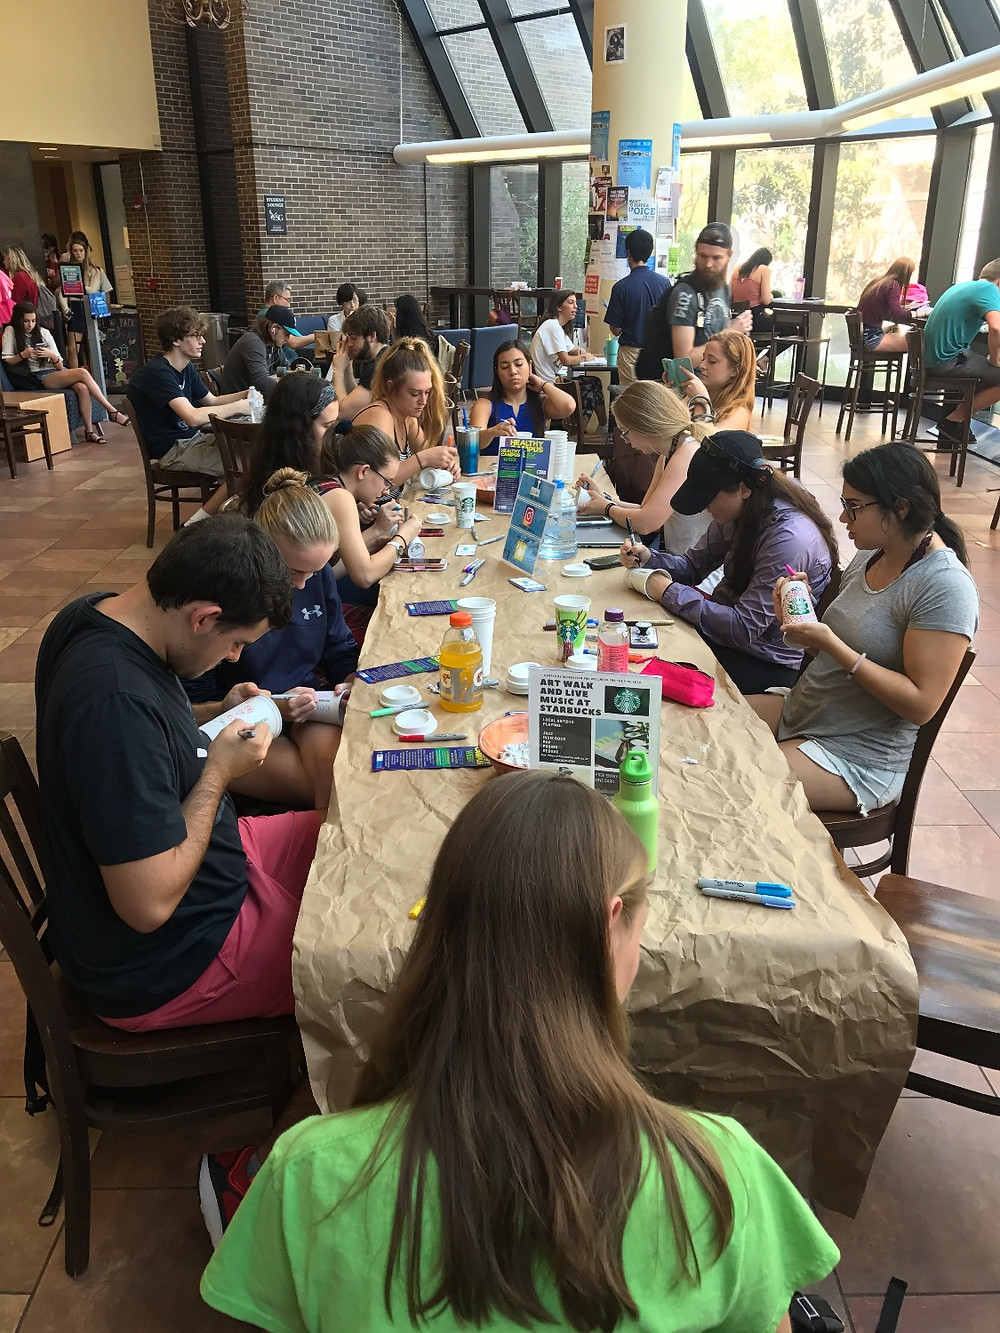 A long table at Starbucks with many people painting mugs.